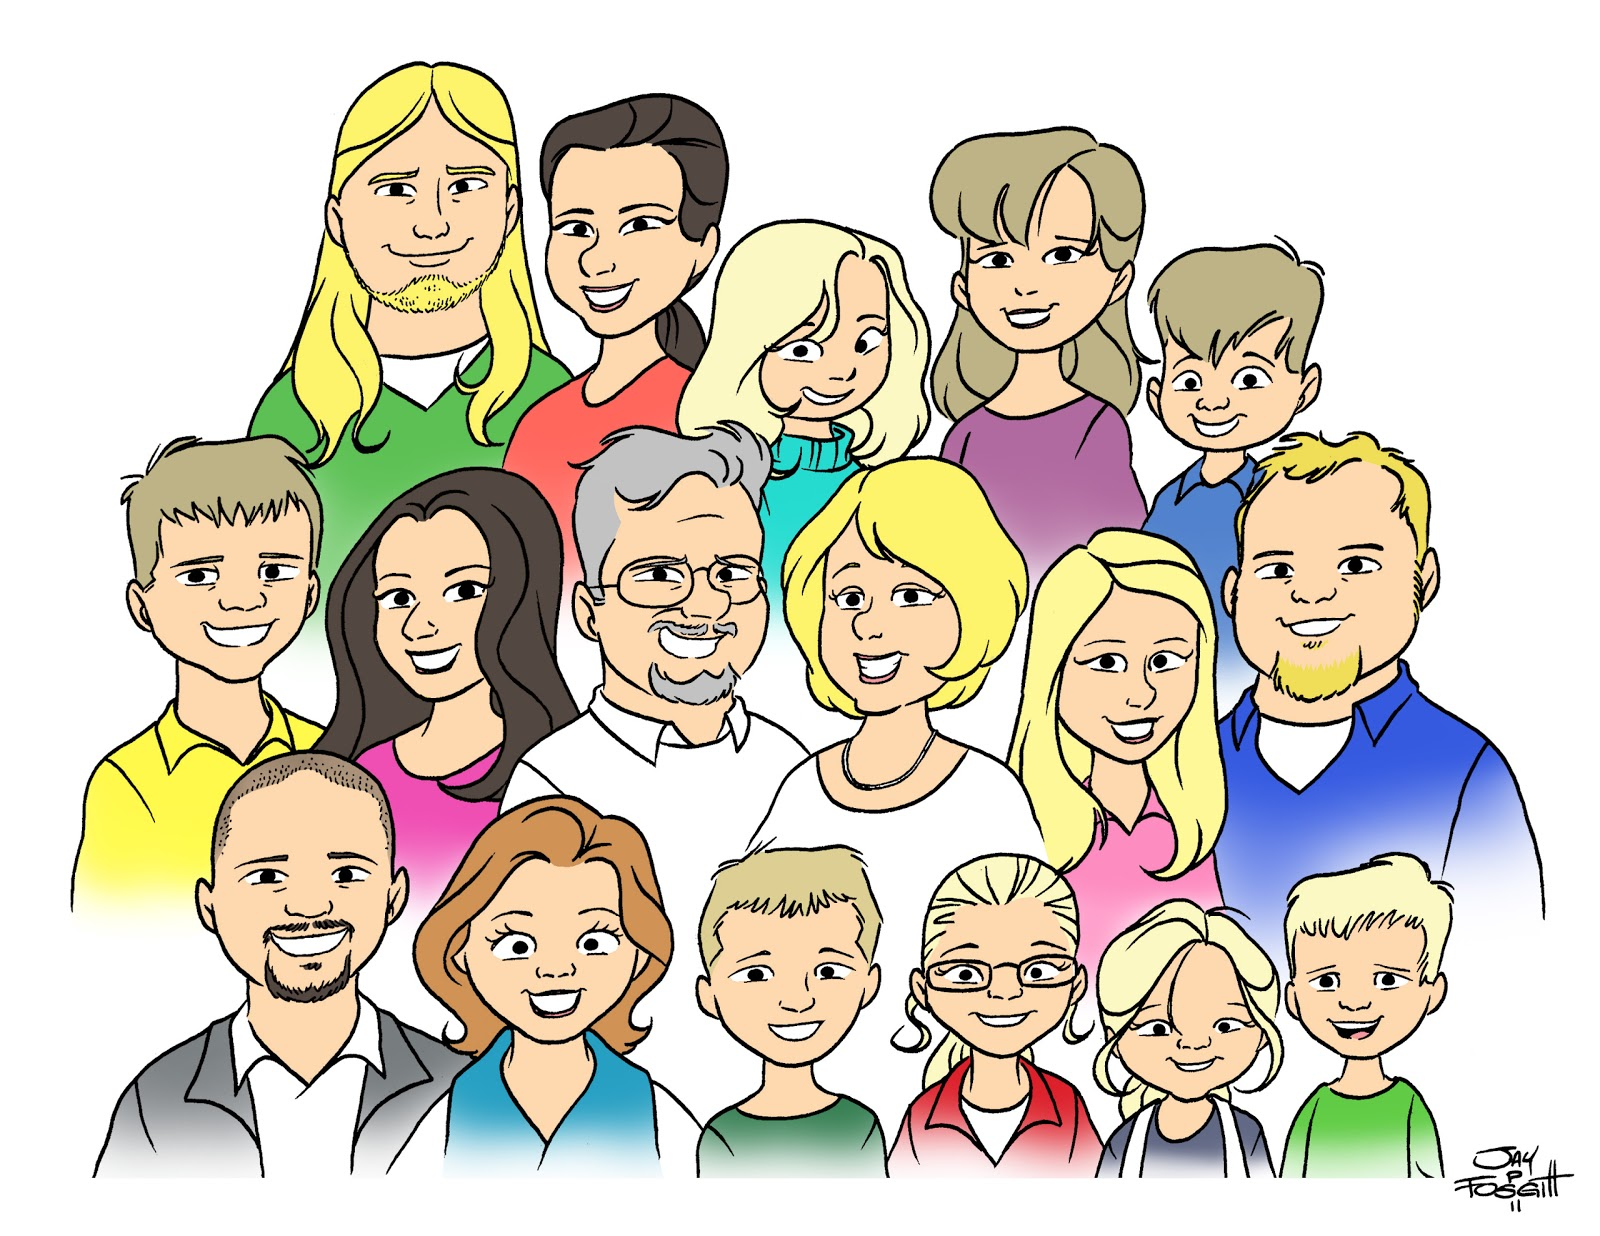 Clipart of a big family image download Indian joint family clipart 6 » Clipart Station image download